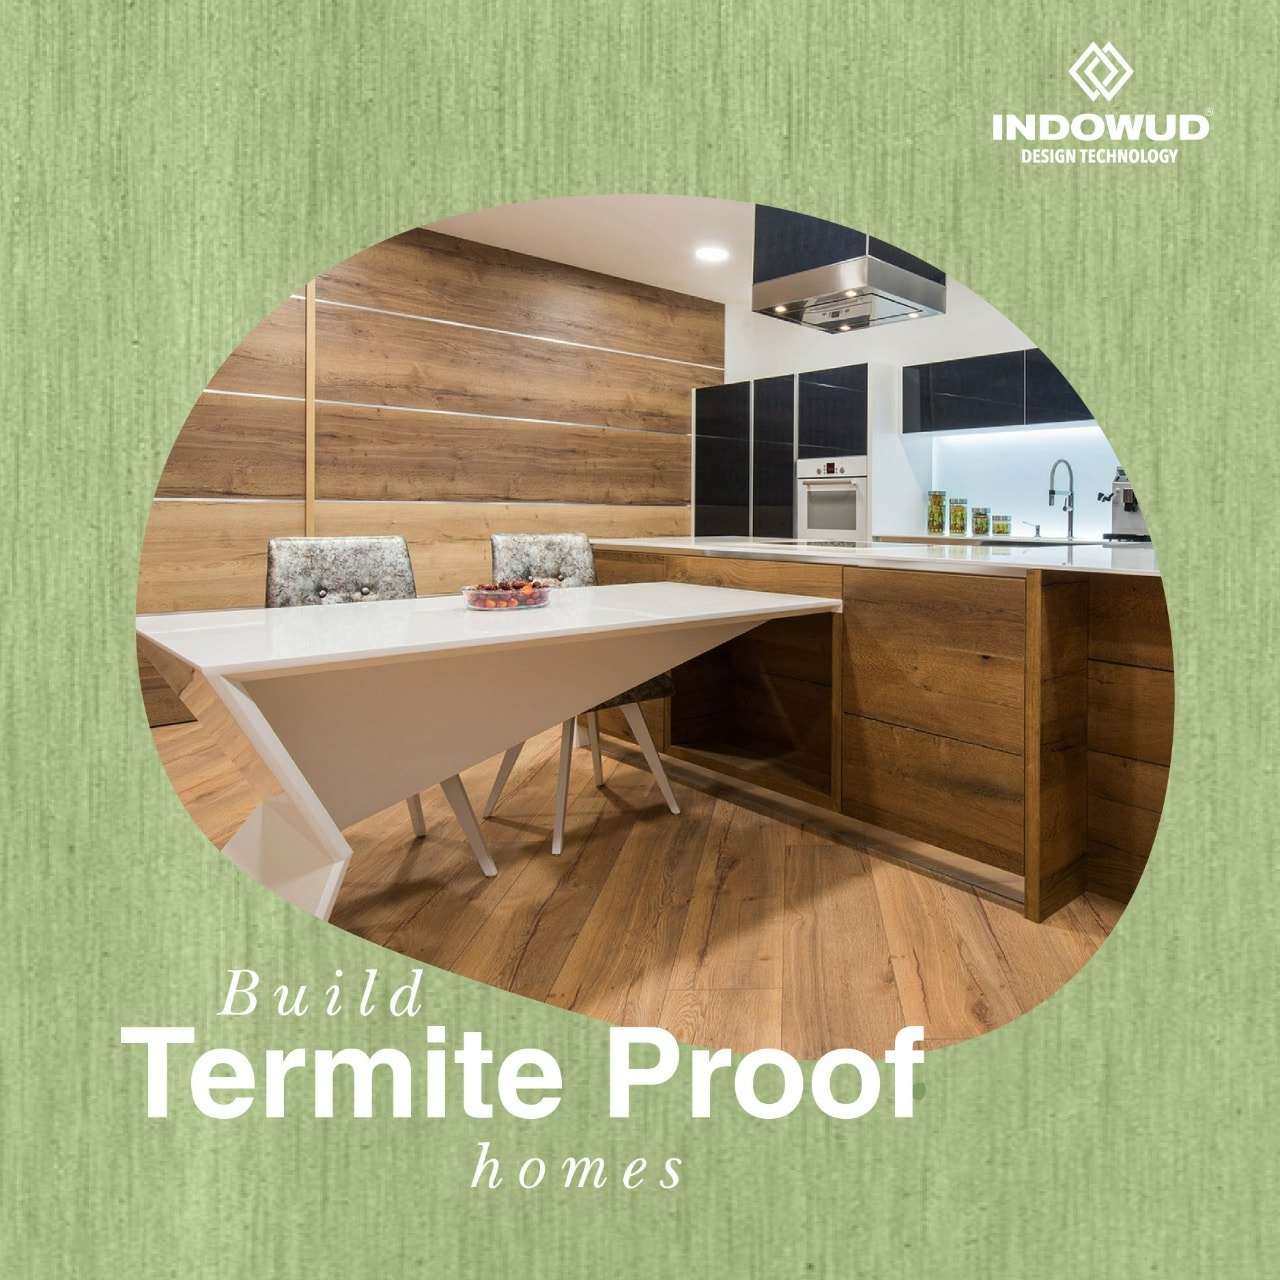 termite proof homes with Indowud NFC